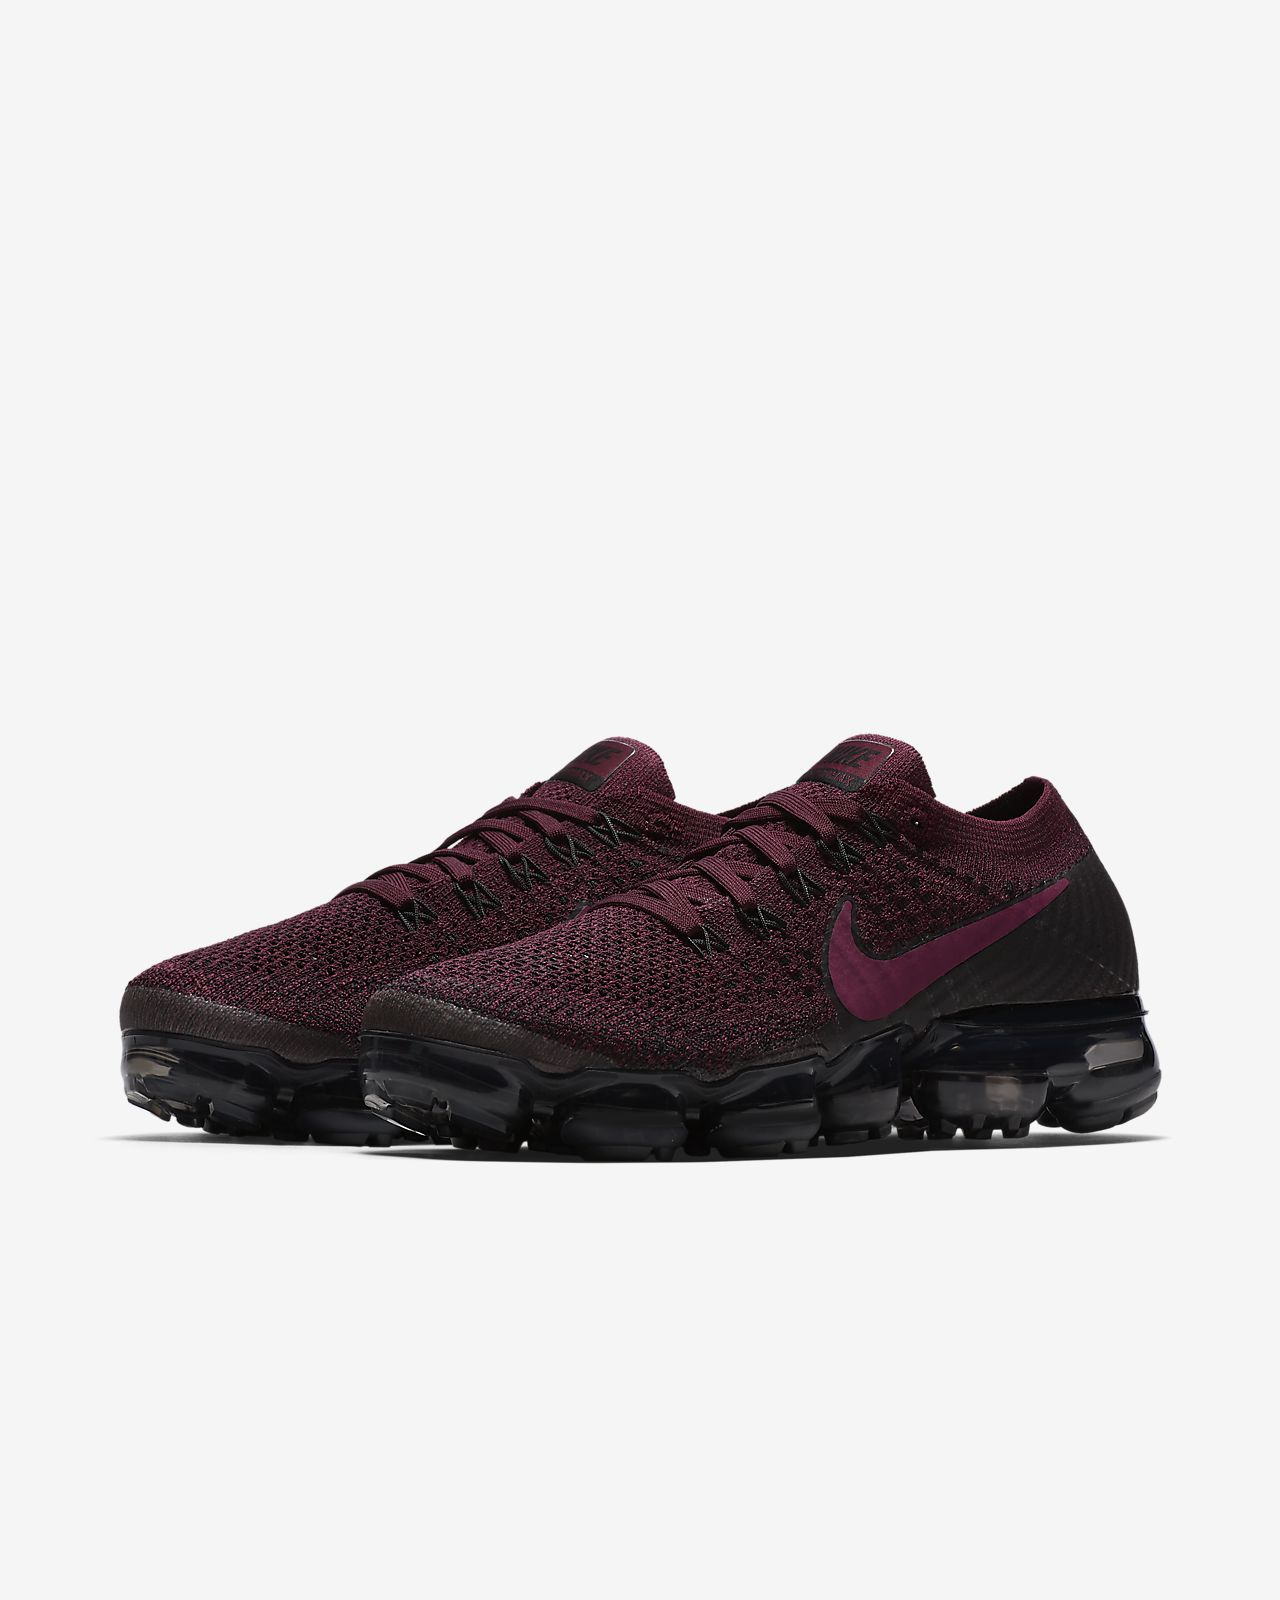 Nike Air VaporMax Flyknit Women s Running Shoe Bordeaux Black Anthracite Tea  Berry 46740df9a